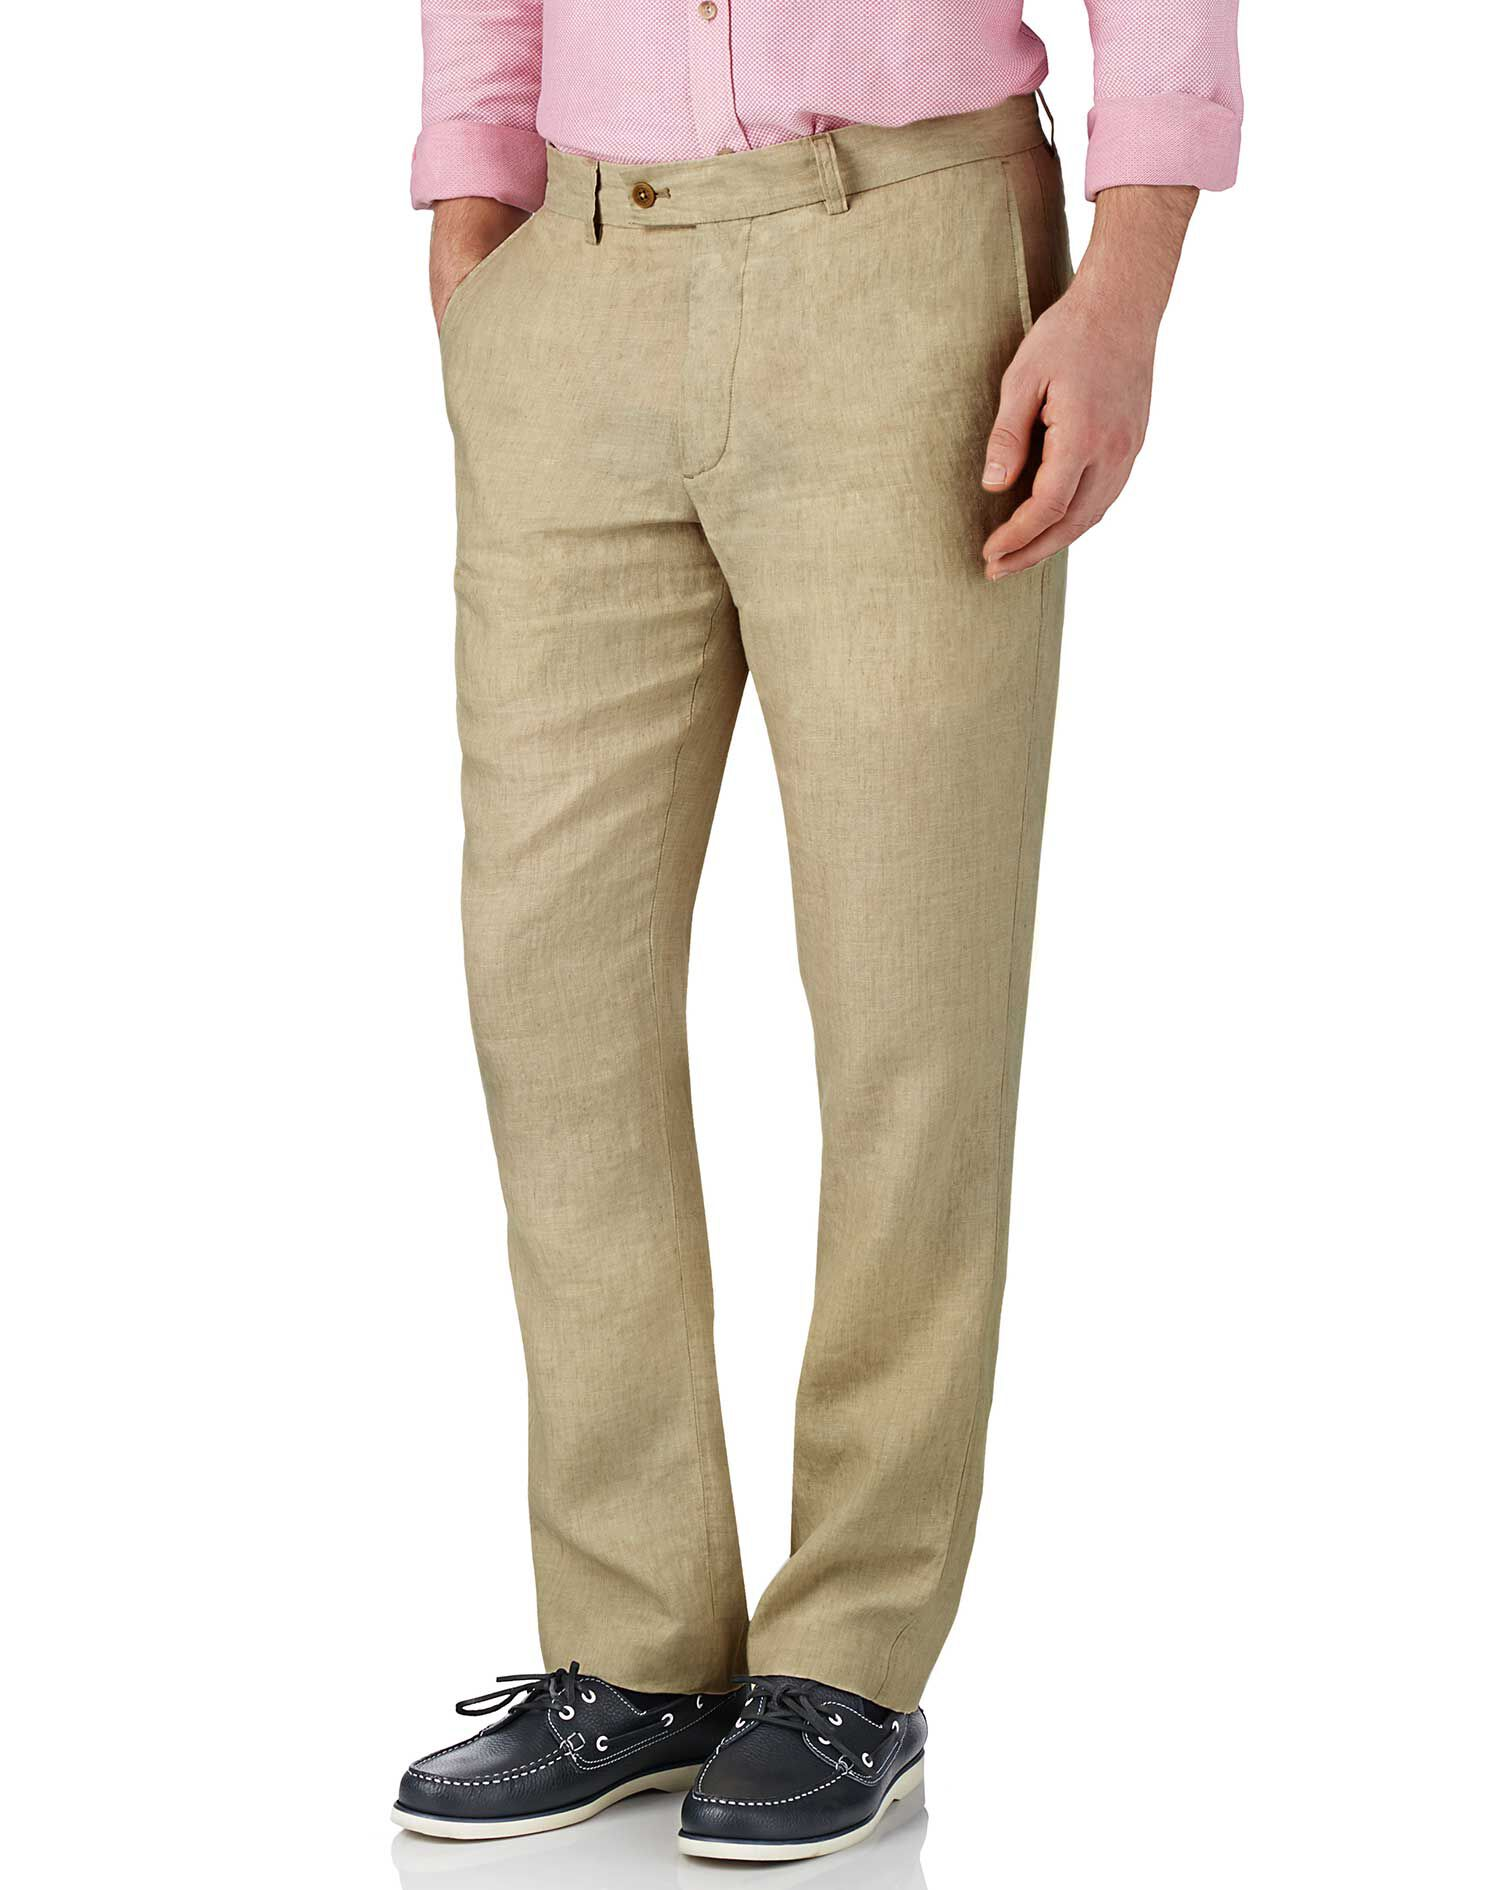 Stone Slim Fit Linen Trousers Size W38 L34 by Charles Tyrwhitt